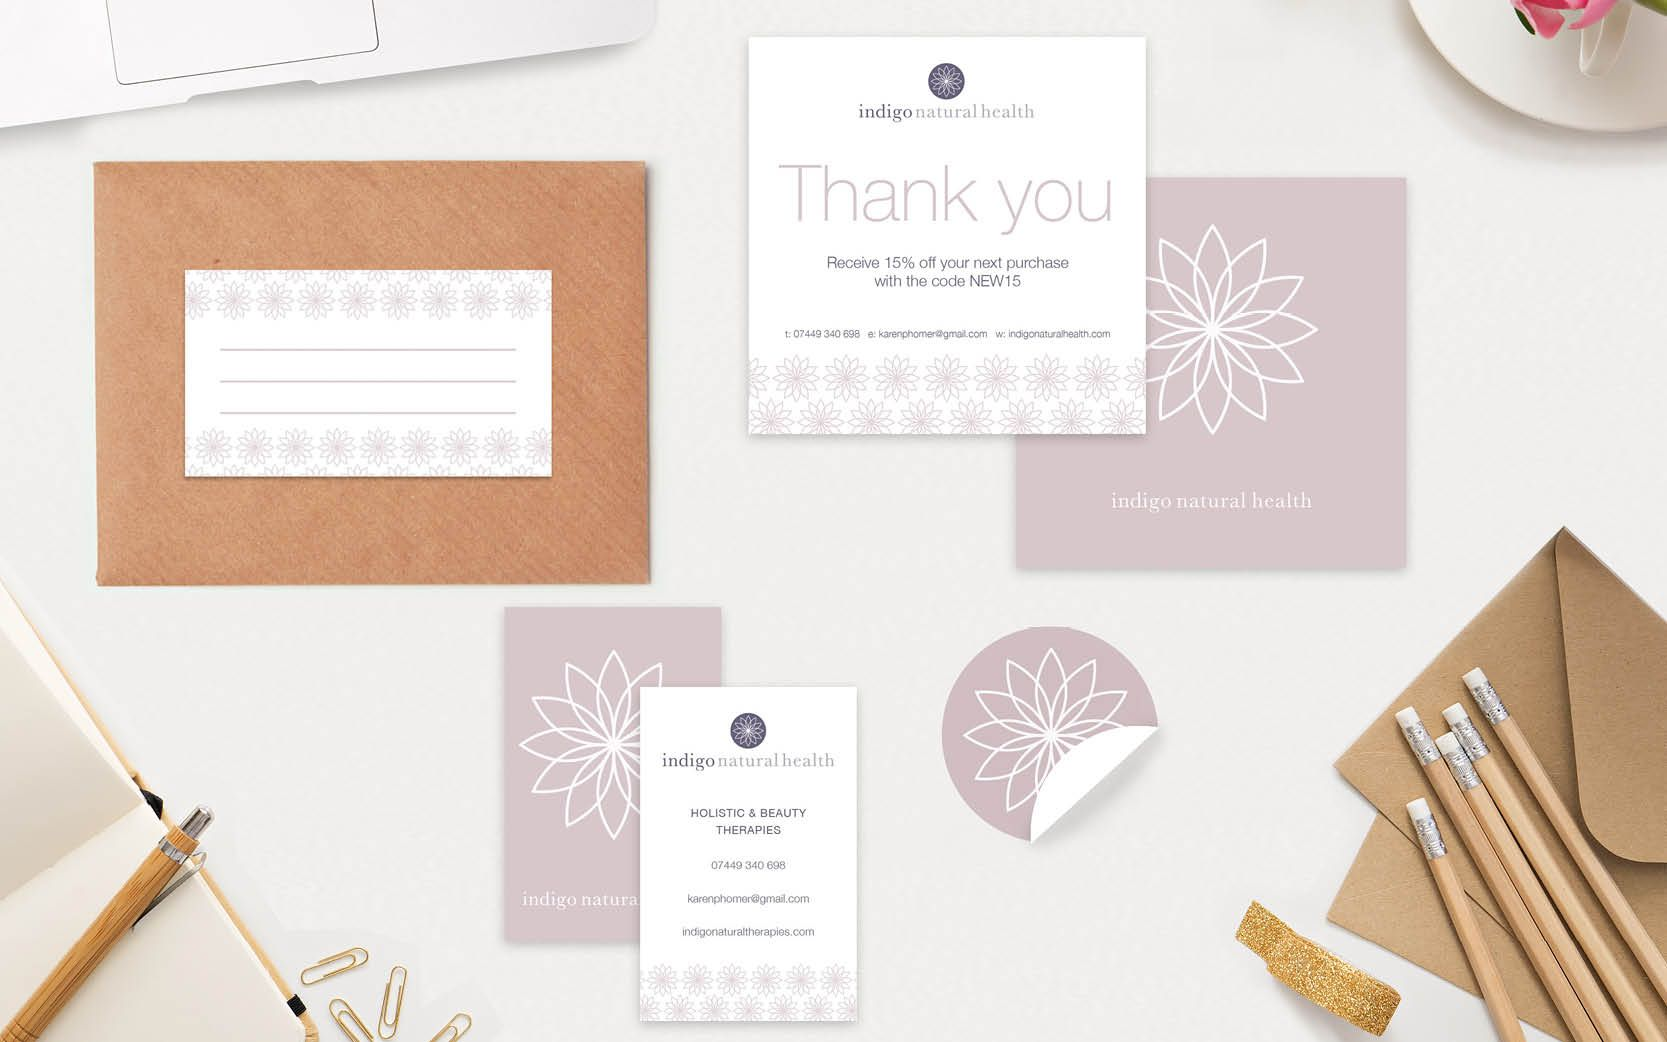 Etsy seller packaging design - includes branded stickers, business card, thank you note and address label design.